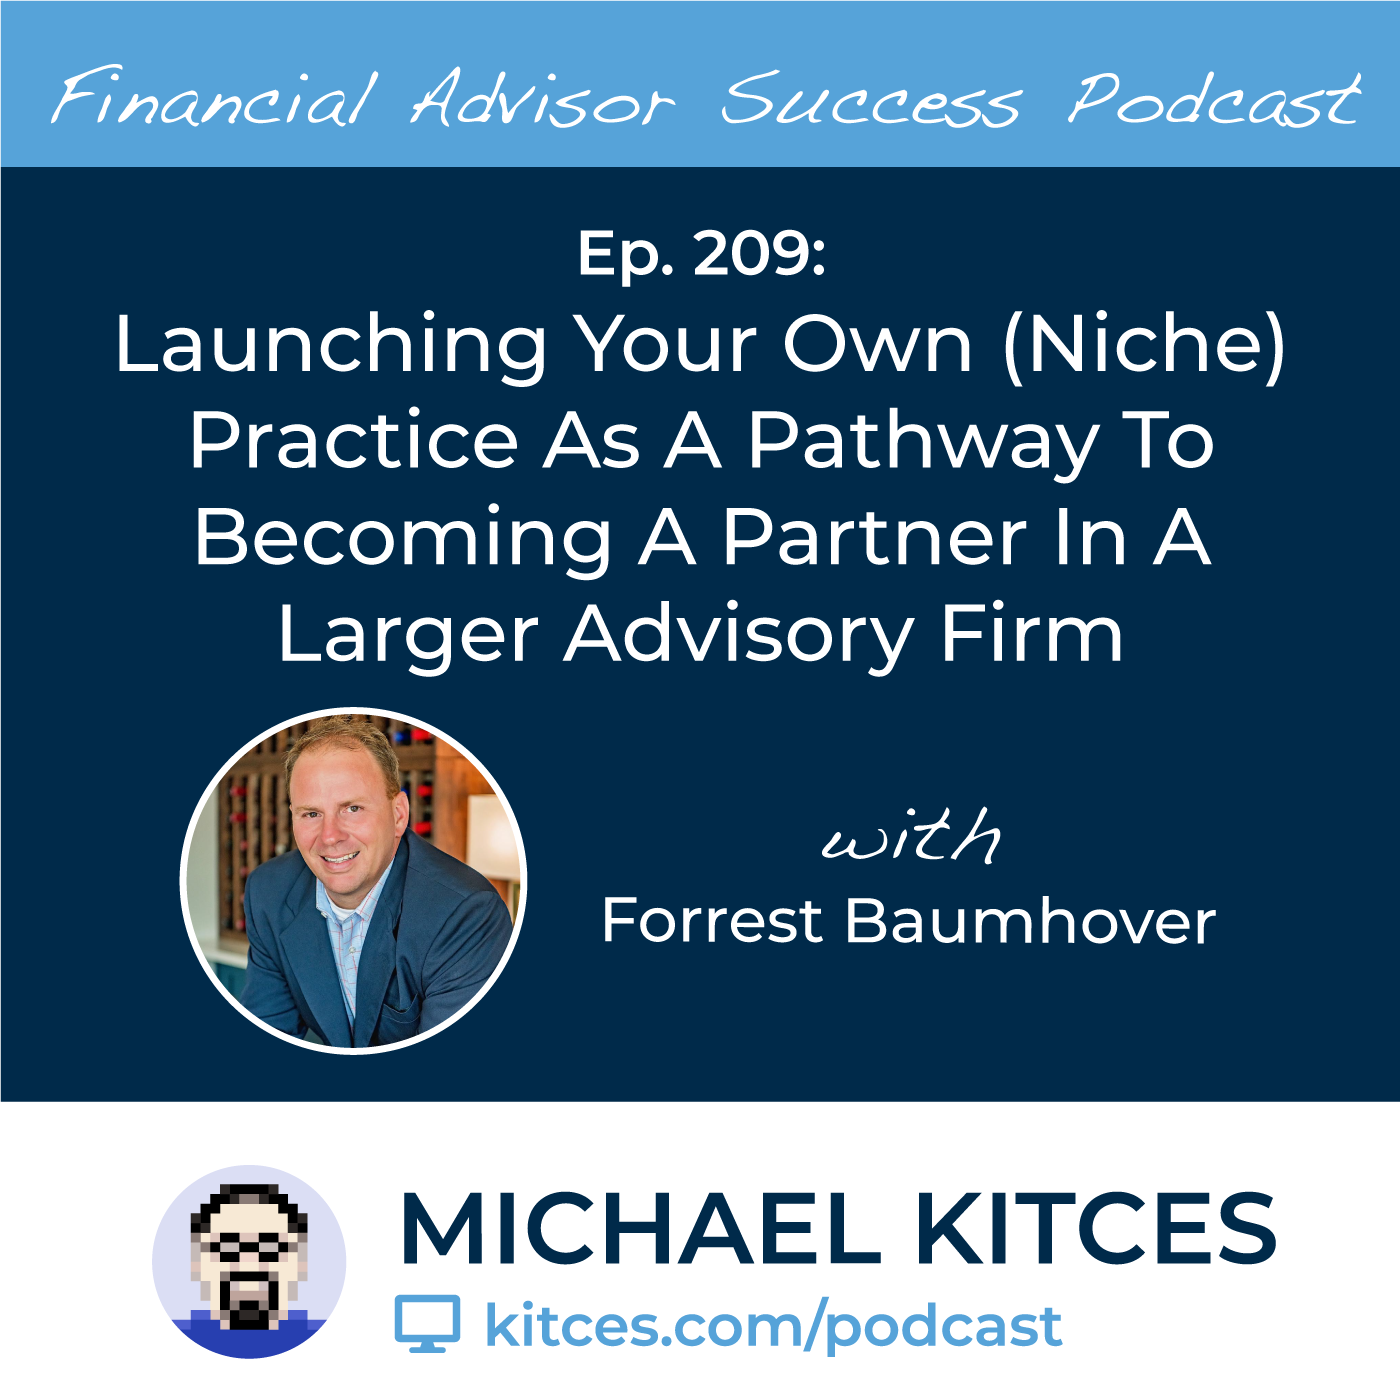 Ep 209: Launching Your Own (Niche) Practice As A Pathway To Becoming A Partner In A Larger Advisory Firm with Forrest Baumhover